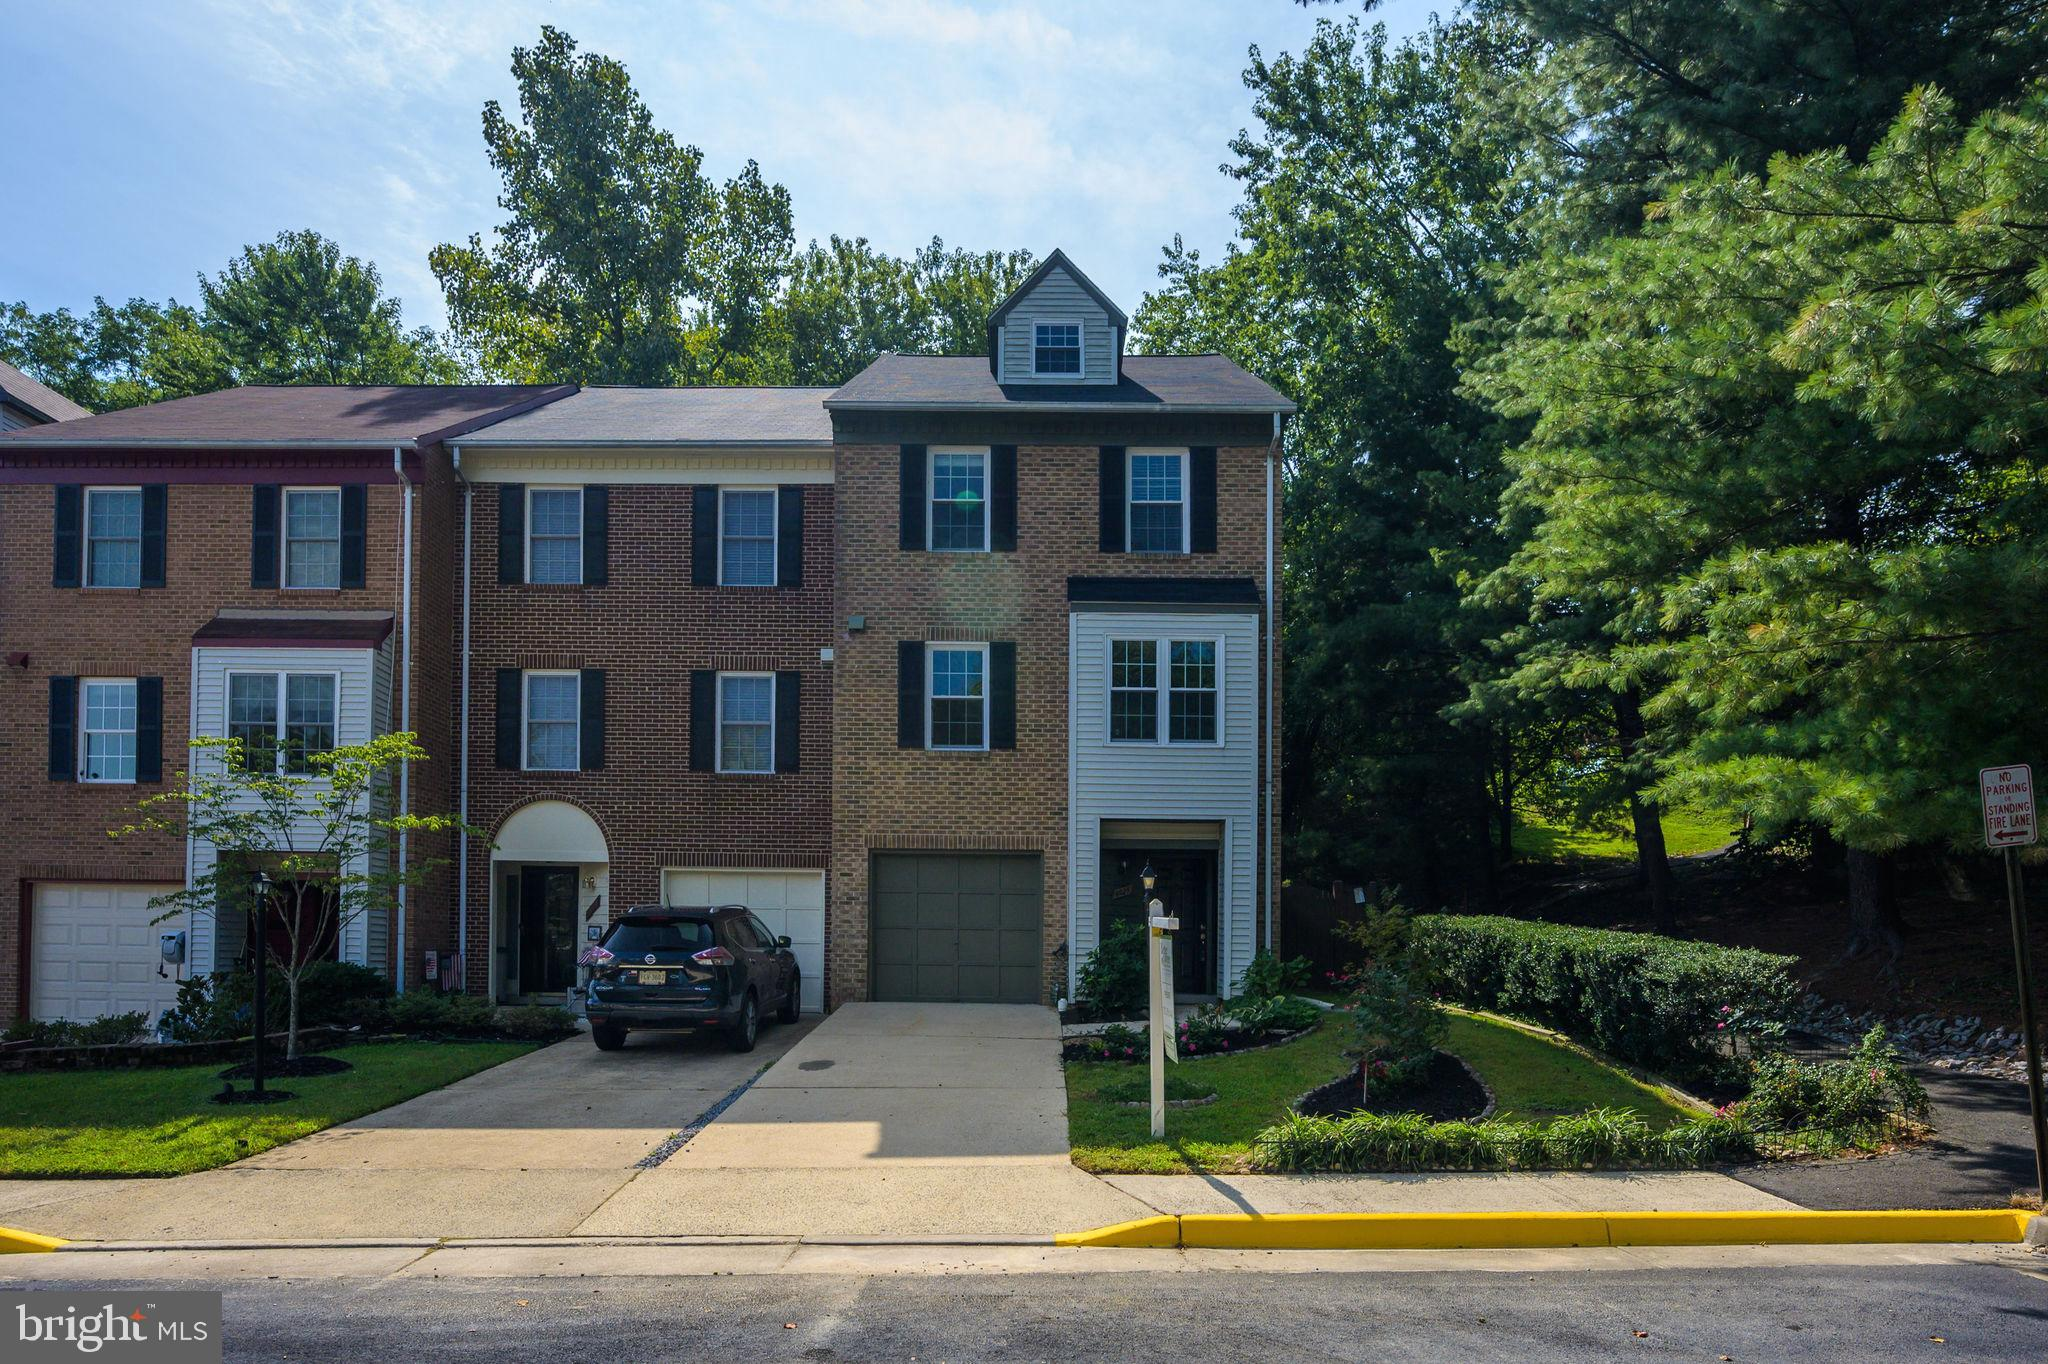 Location, Location, Location! Gorgeous 3 Level, 3 bed, 2 full baths, 2 half baths, 1 car garage, end-unit TH on cul-de-sac with extra side windows providing bright light. 1st level REC room can be used as 4th bedroom, includes a gas fireplace, walk-out to the patio, and a half Bath. 2nd fl main level features gleaming hardwoods in the living and dining rooms. The spacious eat in gourmet kitchen with tile back splash, pantry, stainless steel appliances, table space, and breakfast room. The large deck off the living room overlooks green space. The large Master Suite provides great lighting from the skylights, ensuite with a double vanity & a large loft serving as a private office. Roof has been replaced in 2018, HVAC roughly in 2009, Water heater roughly in 2015. Quick access to everything. Near Van Dorn St, Rte 1,495, Metro, Kingstowne, shops & eateries. Short drive to Pentagon, DC & National Harbor.